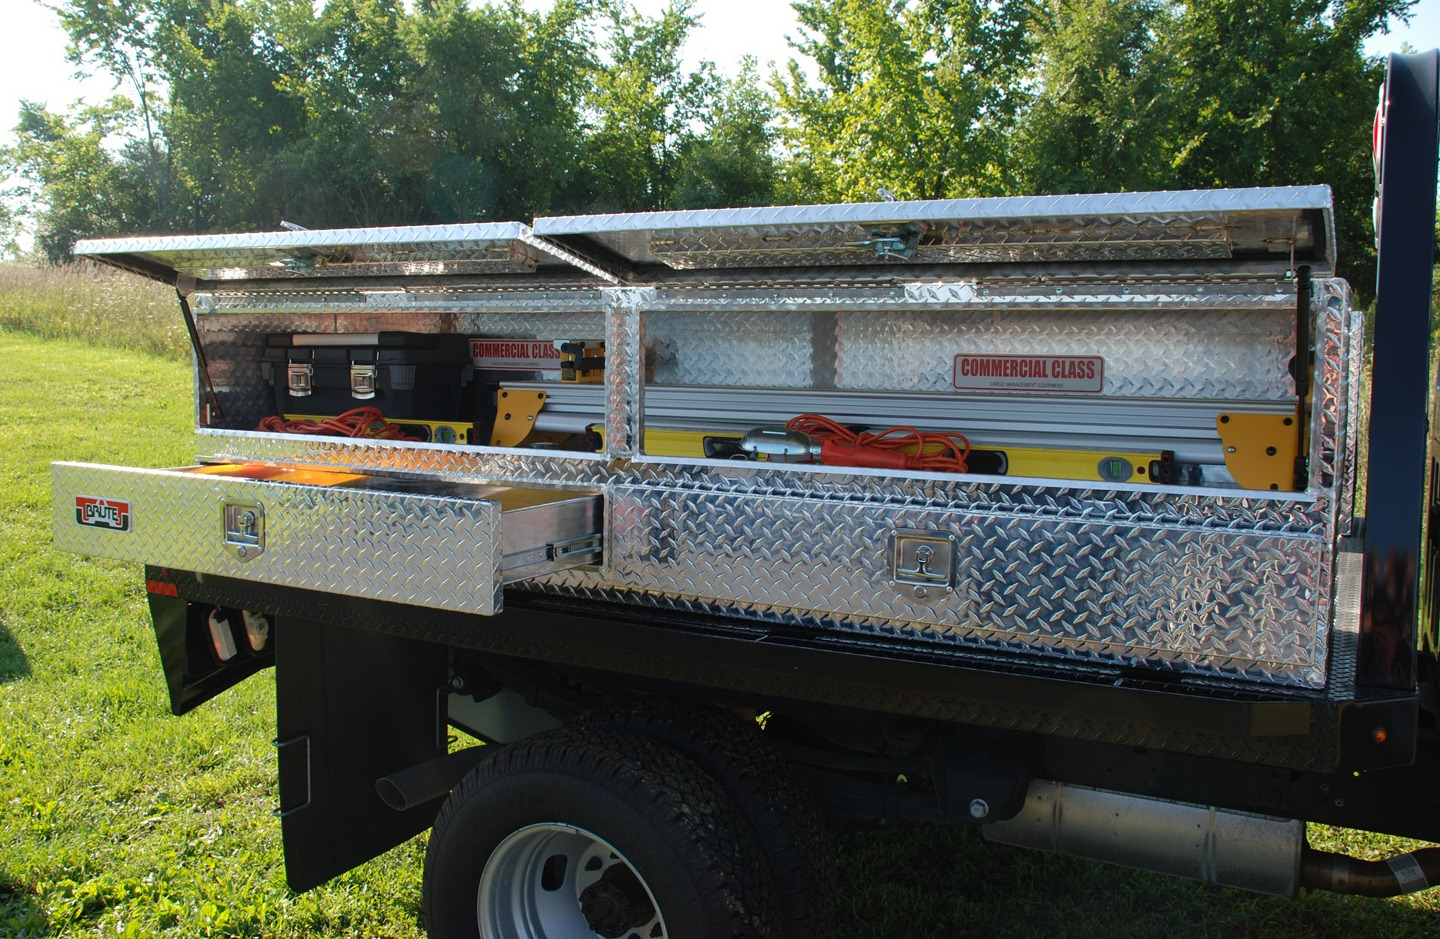 Tool Box For Truck: Stake Bed High Capacity Tool Boxes